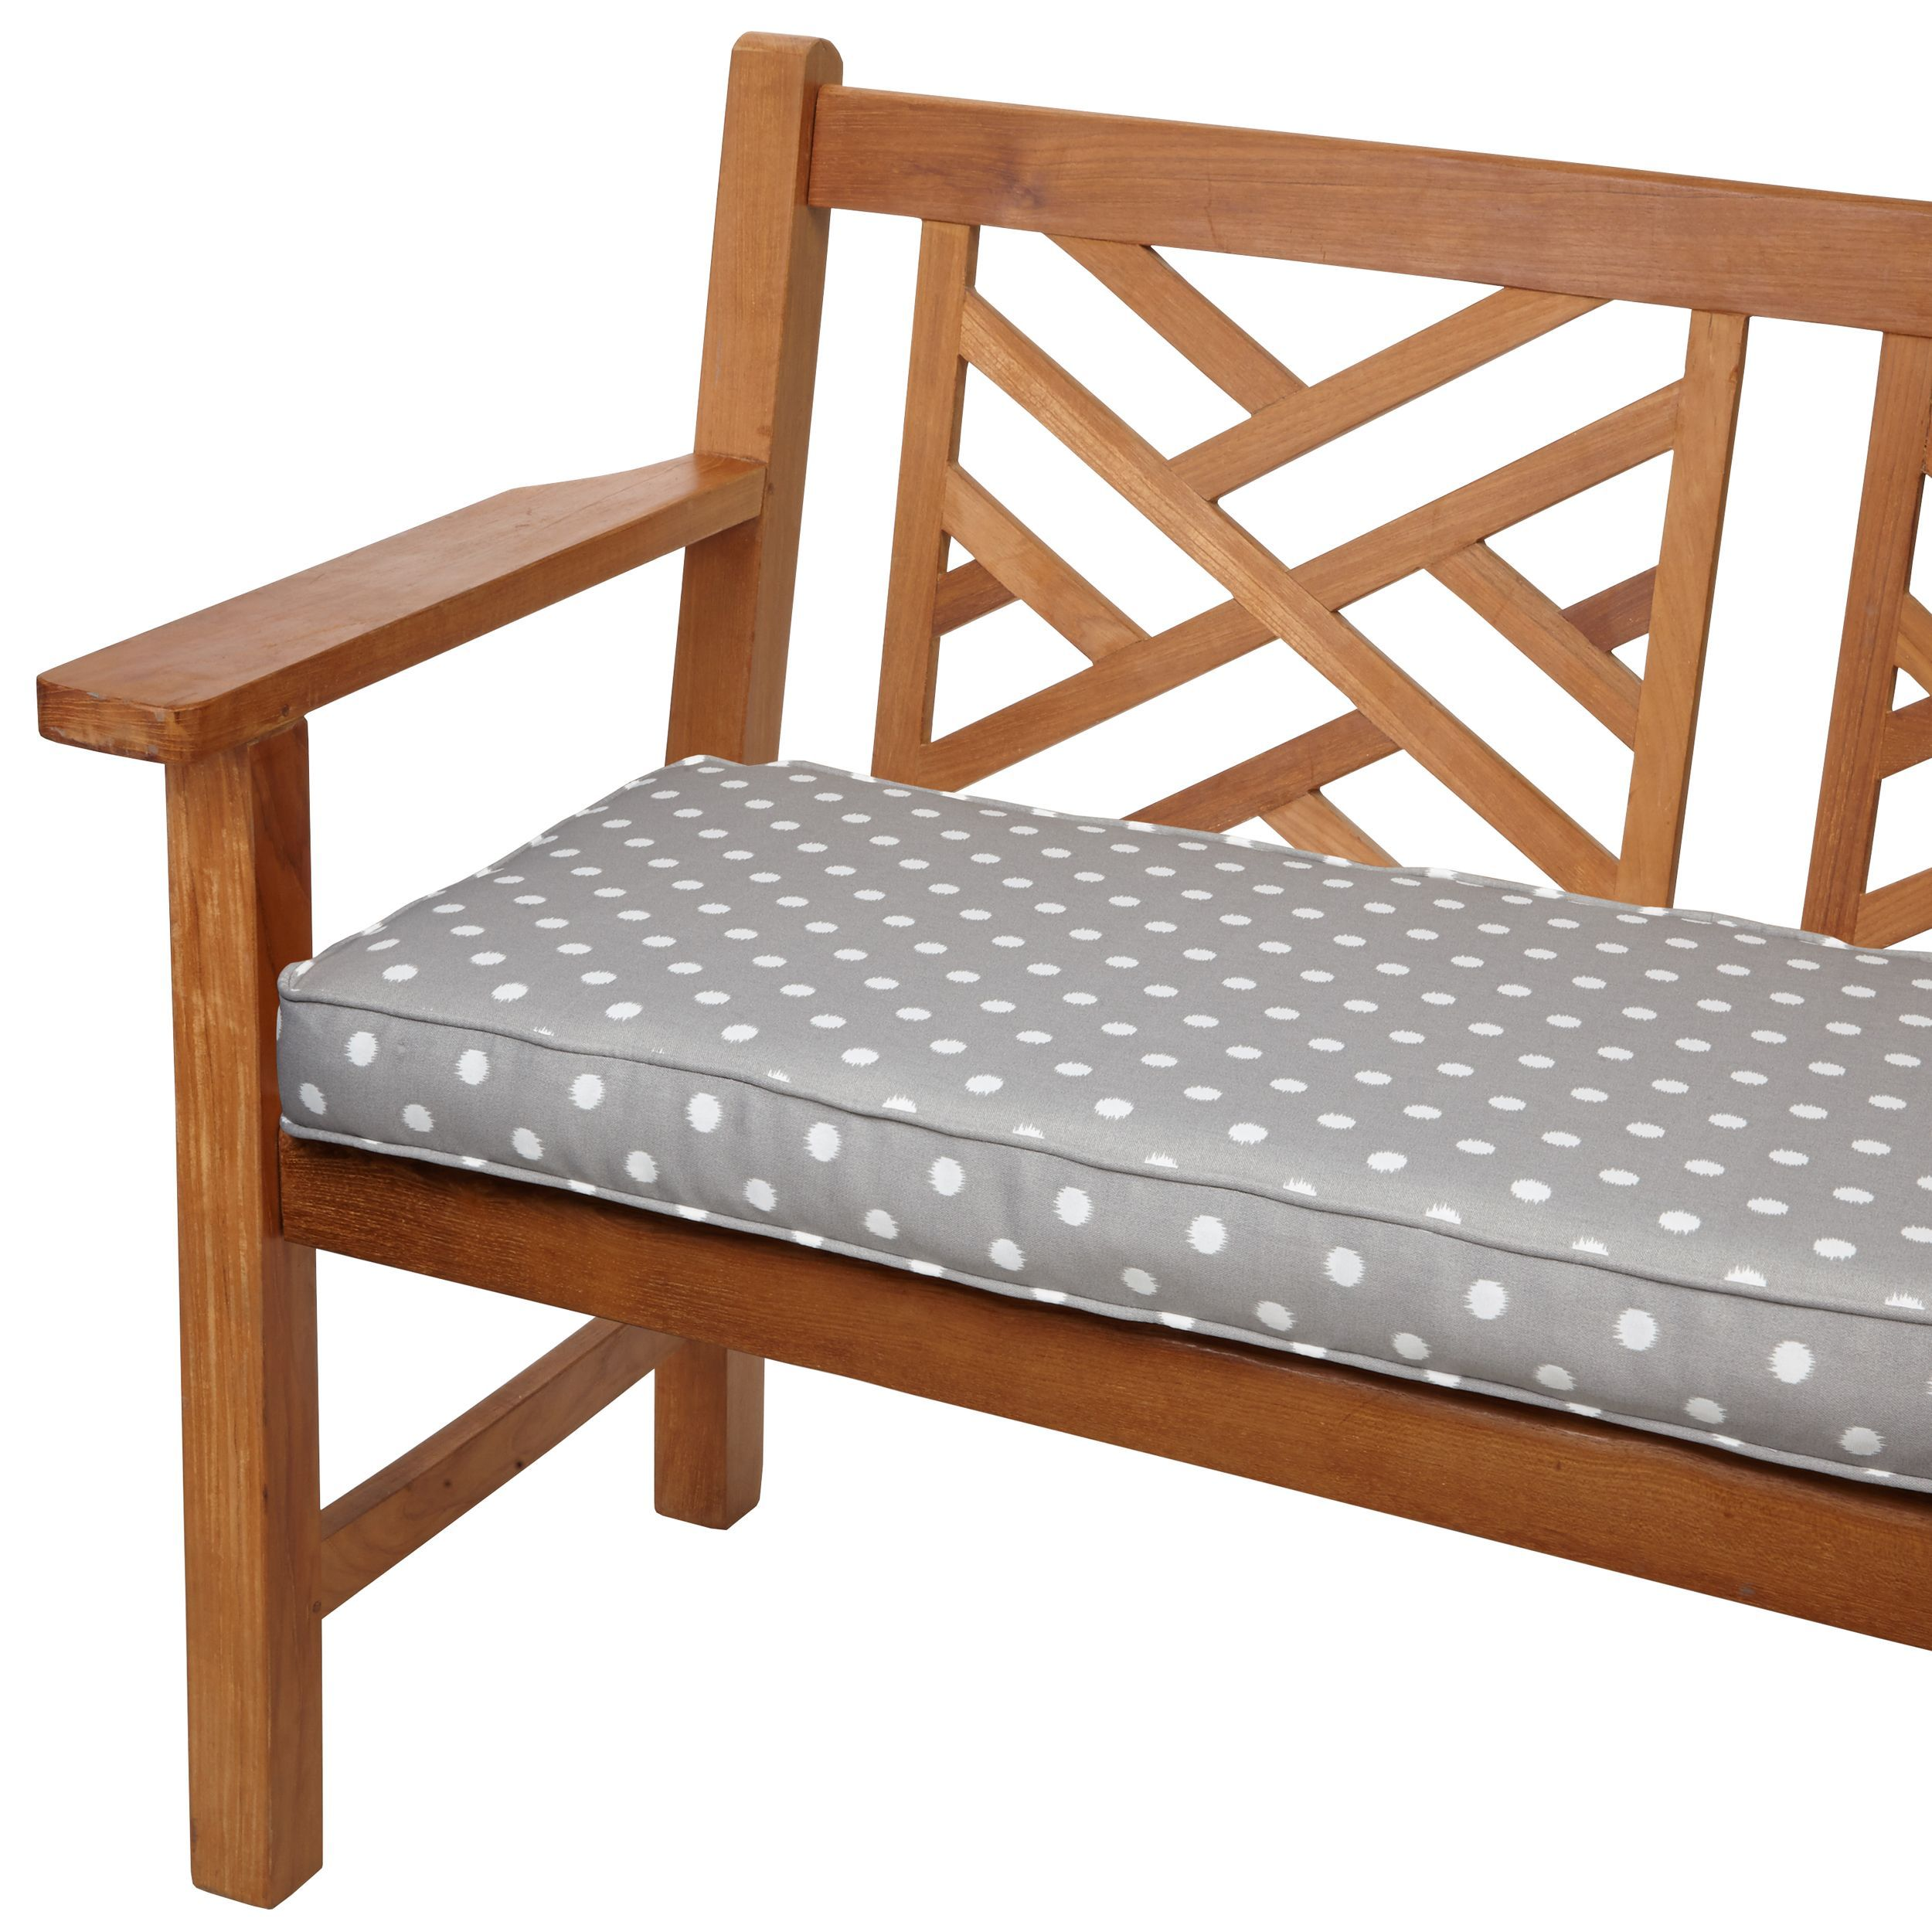 Incredible Grey Dots 60 Inch Indoor Outdoor Corded Bench Cushion For Bralicious Painted Fabric Chair Ideas Braliciousco